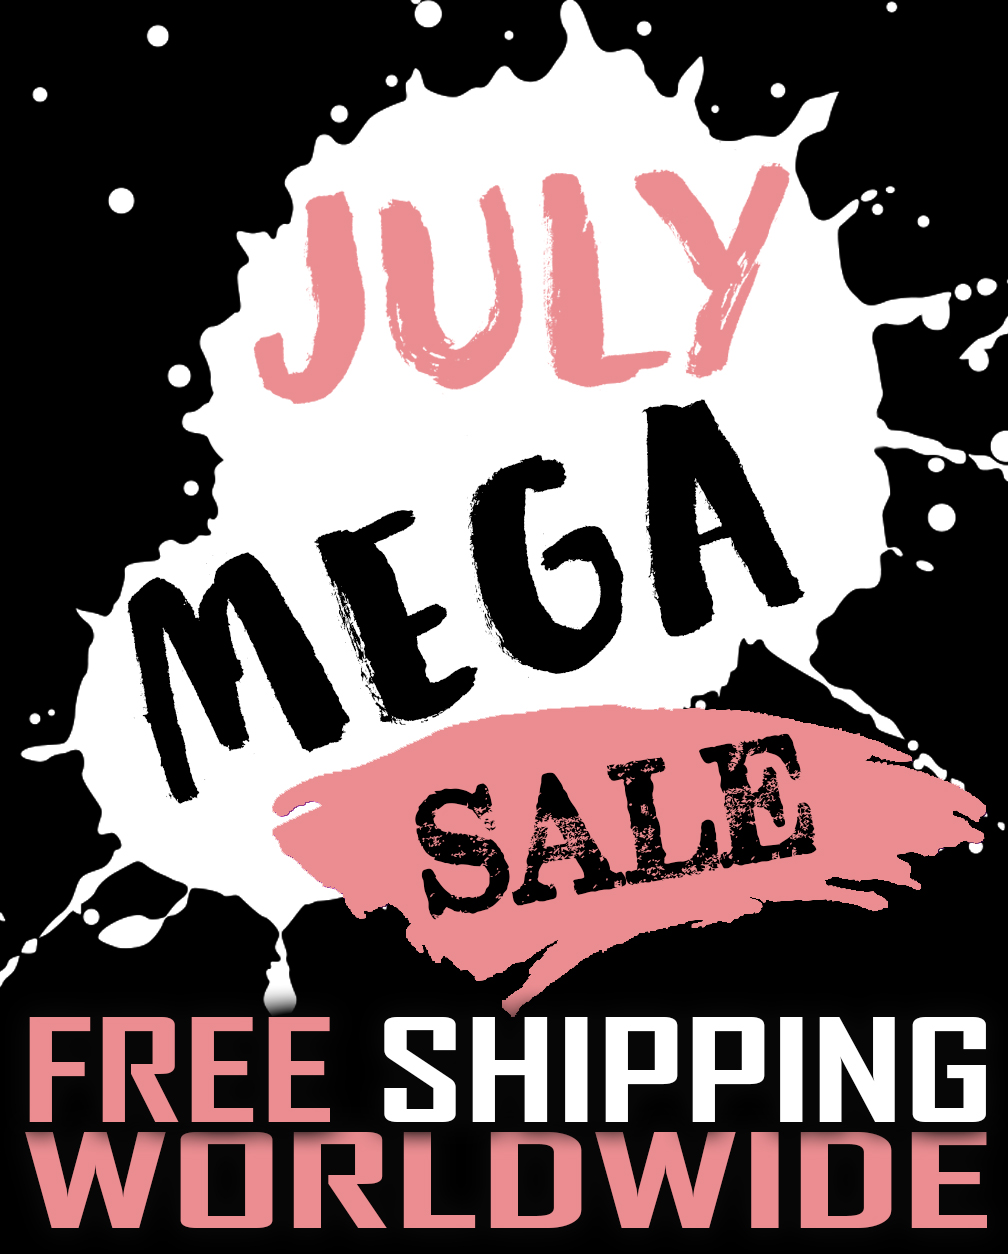 july-mega-sale-free-worldwide-shipping.jpg